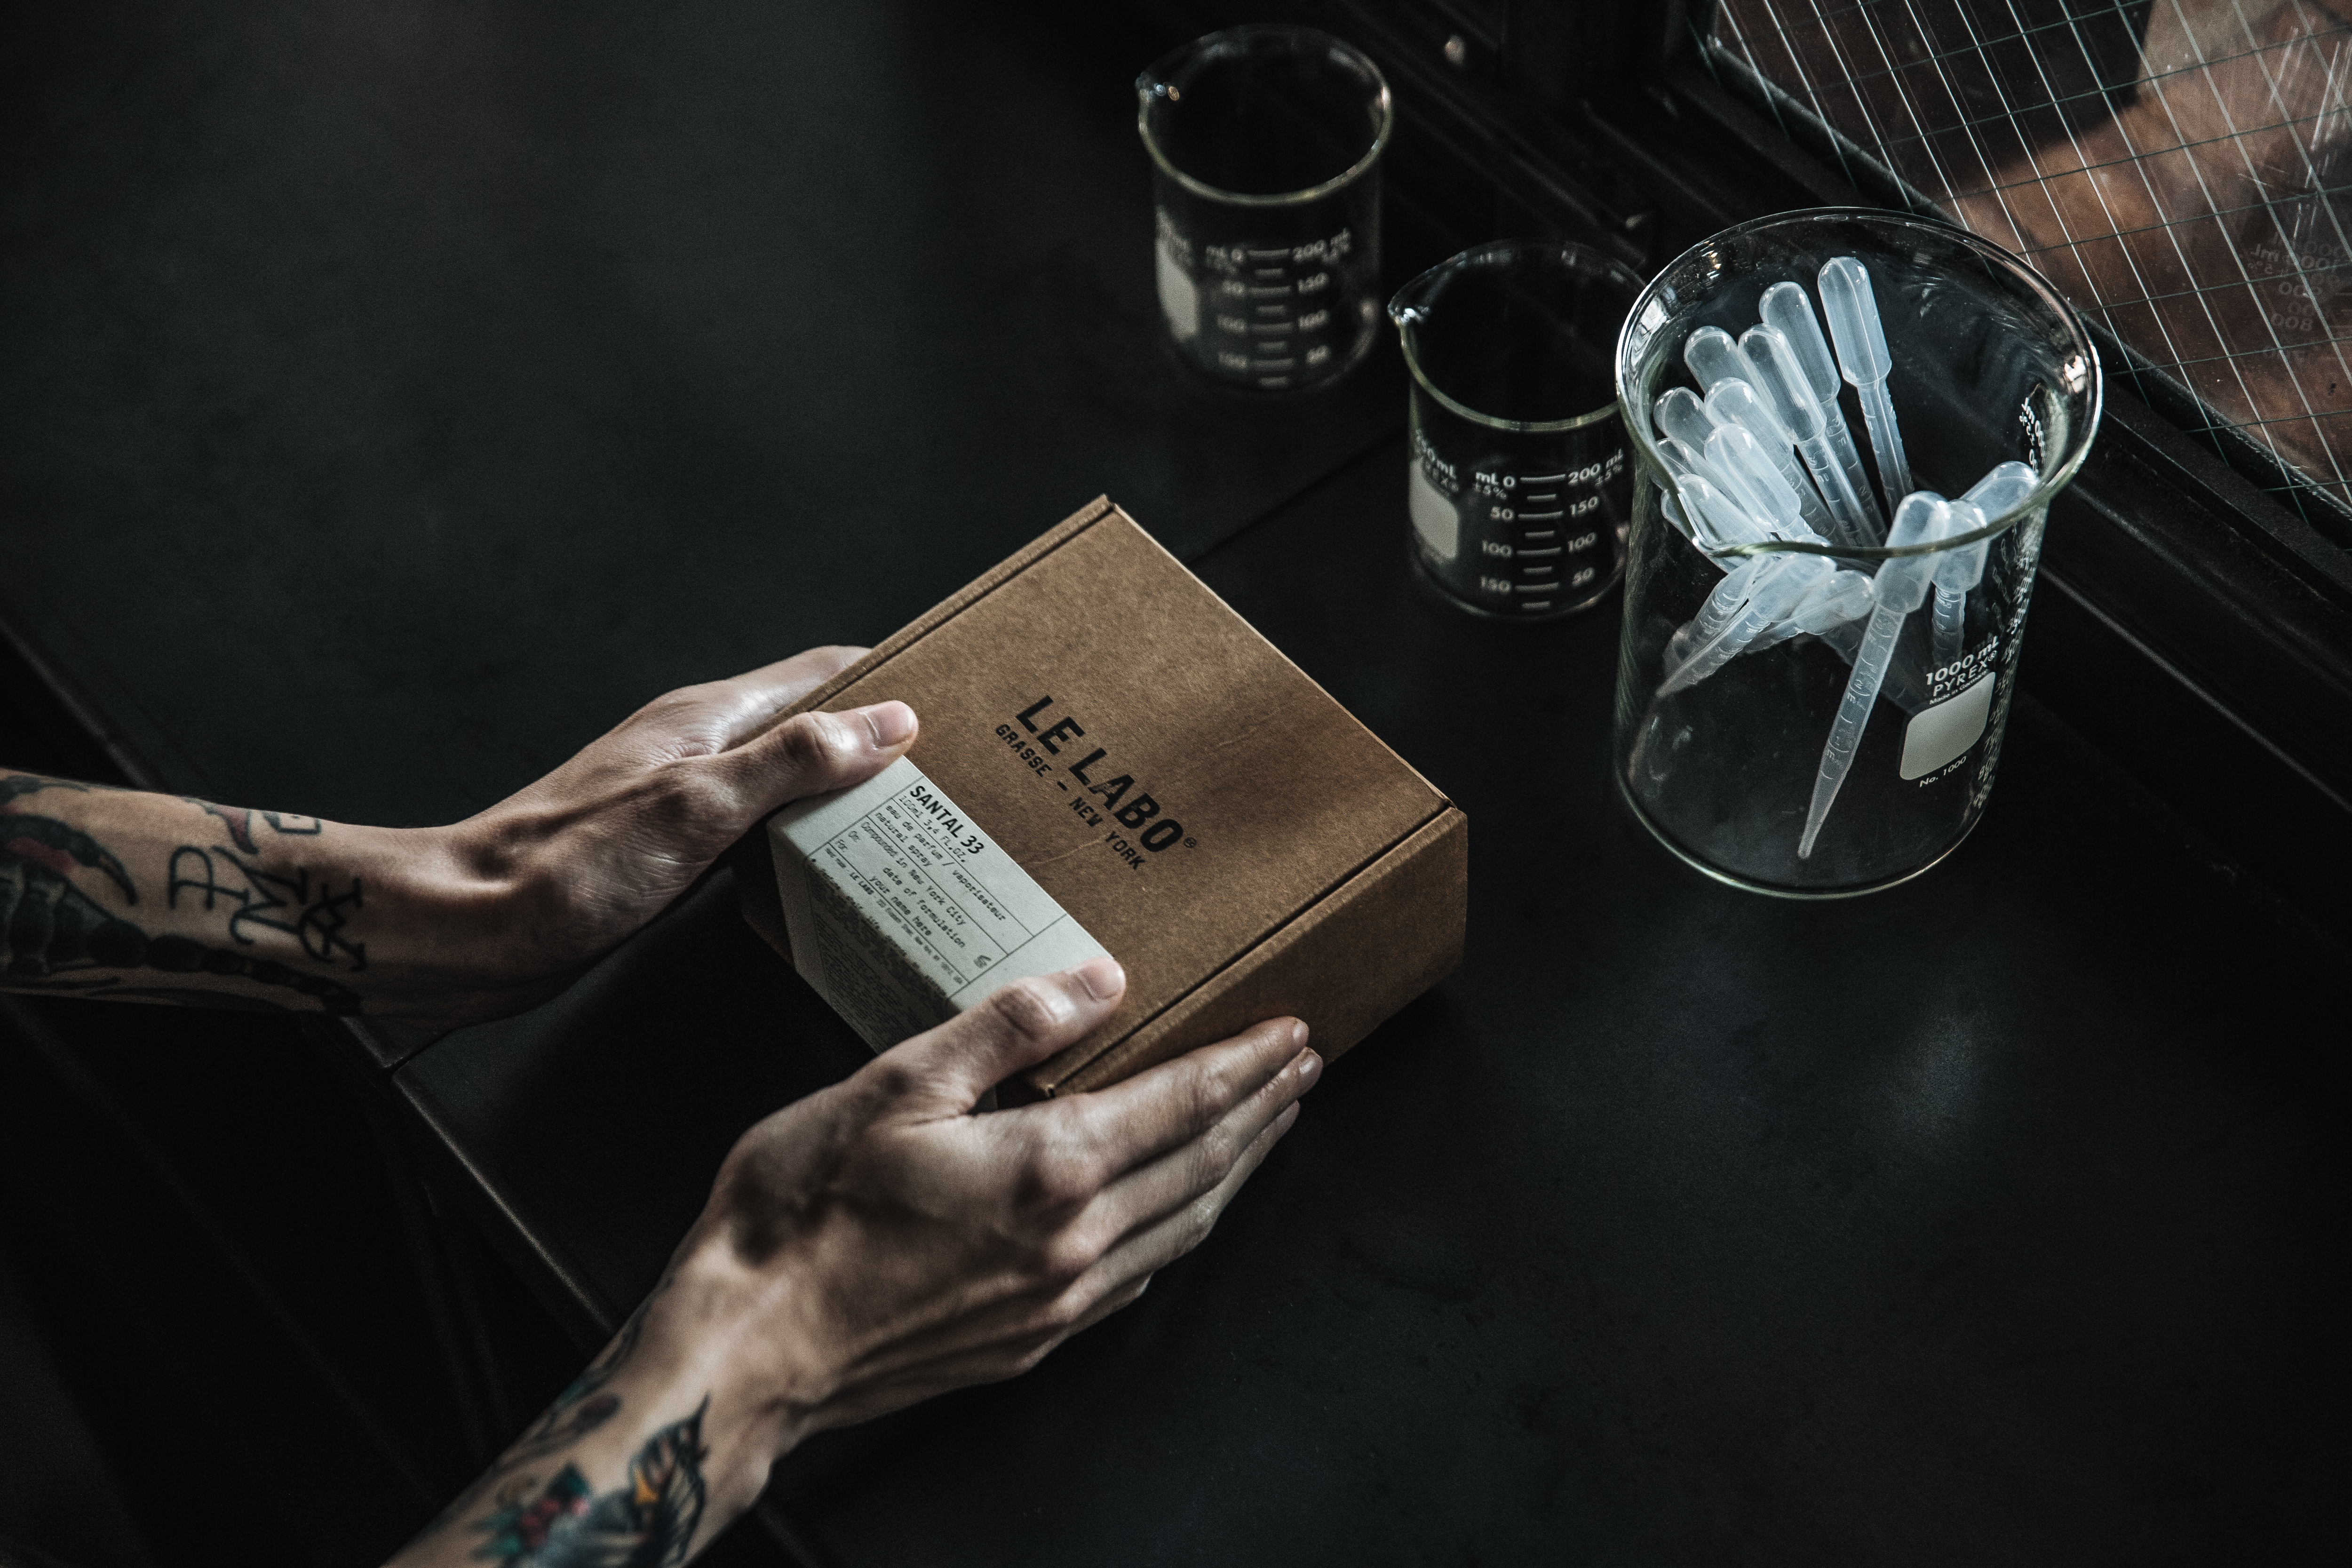 Le Labo, simply focused on quality